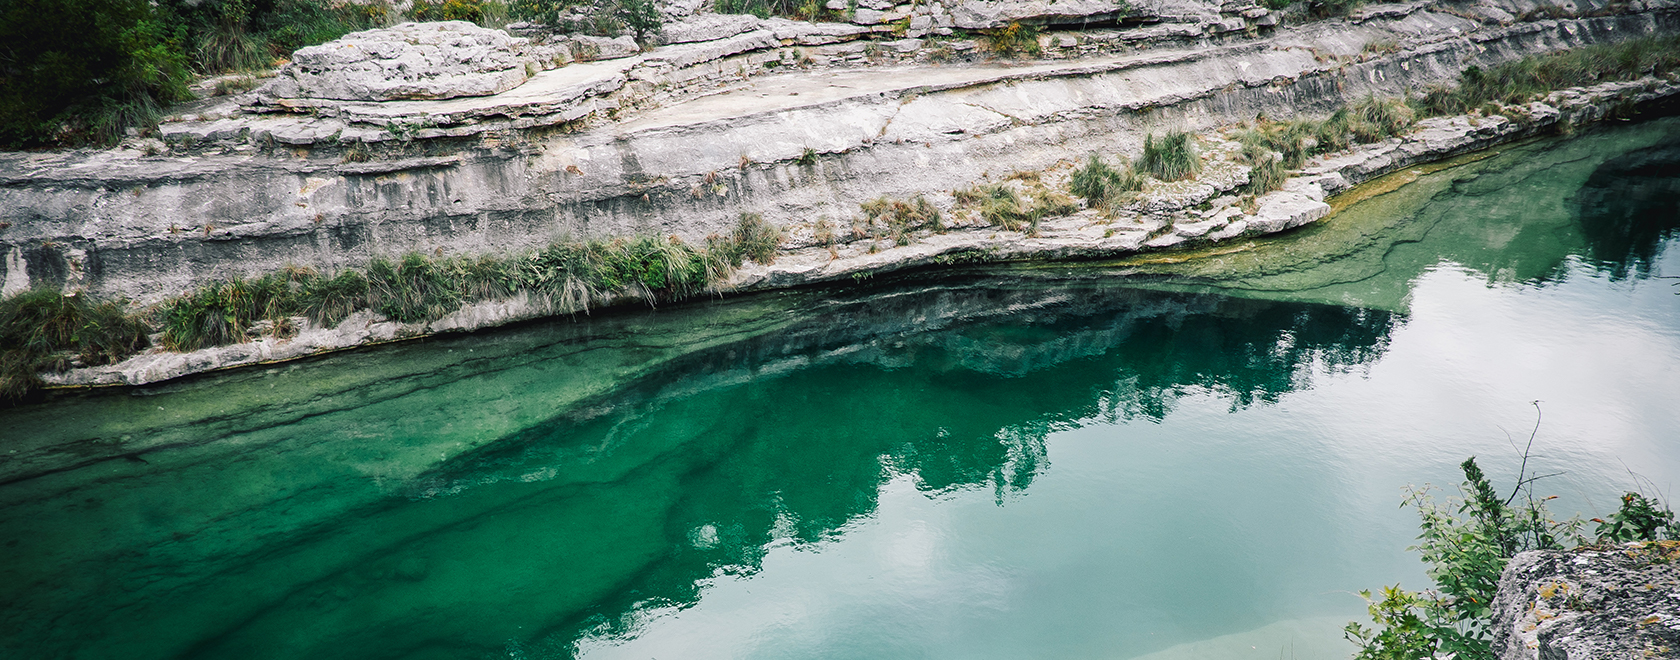 Photo of a lush canyon body of water